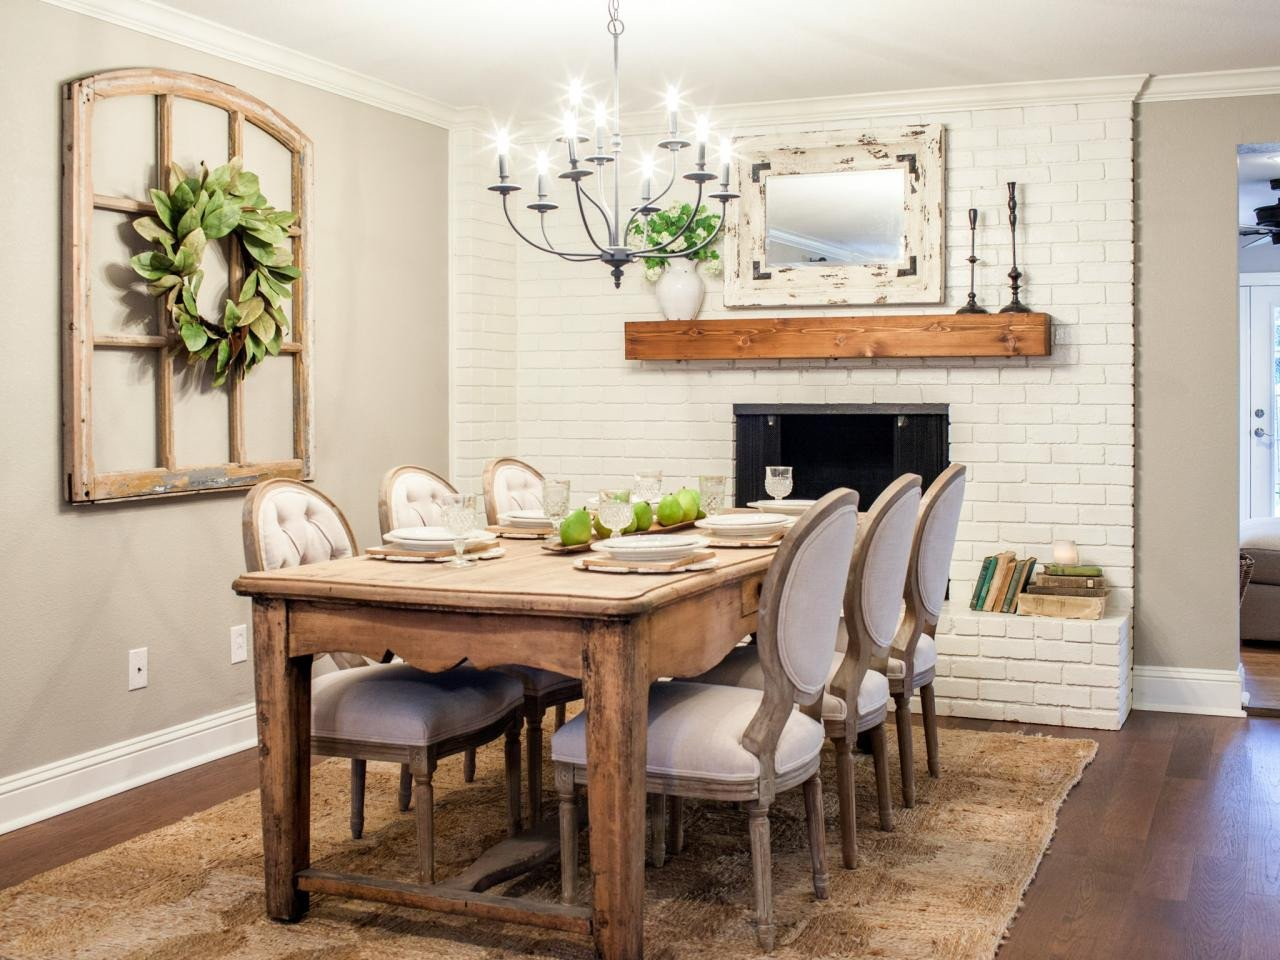 Rustic Dining Room Wall Decor Unique Fixer Upper Archives the Honey B Home